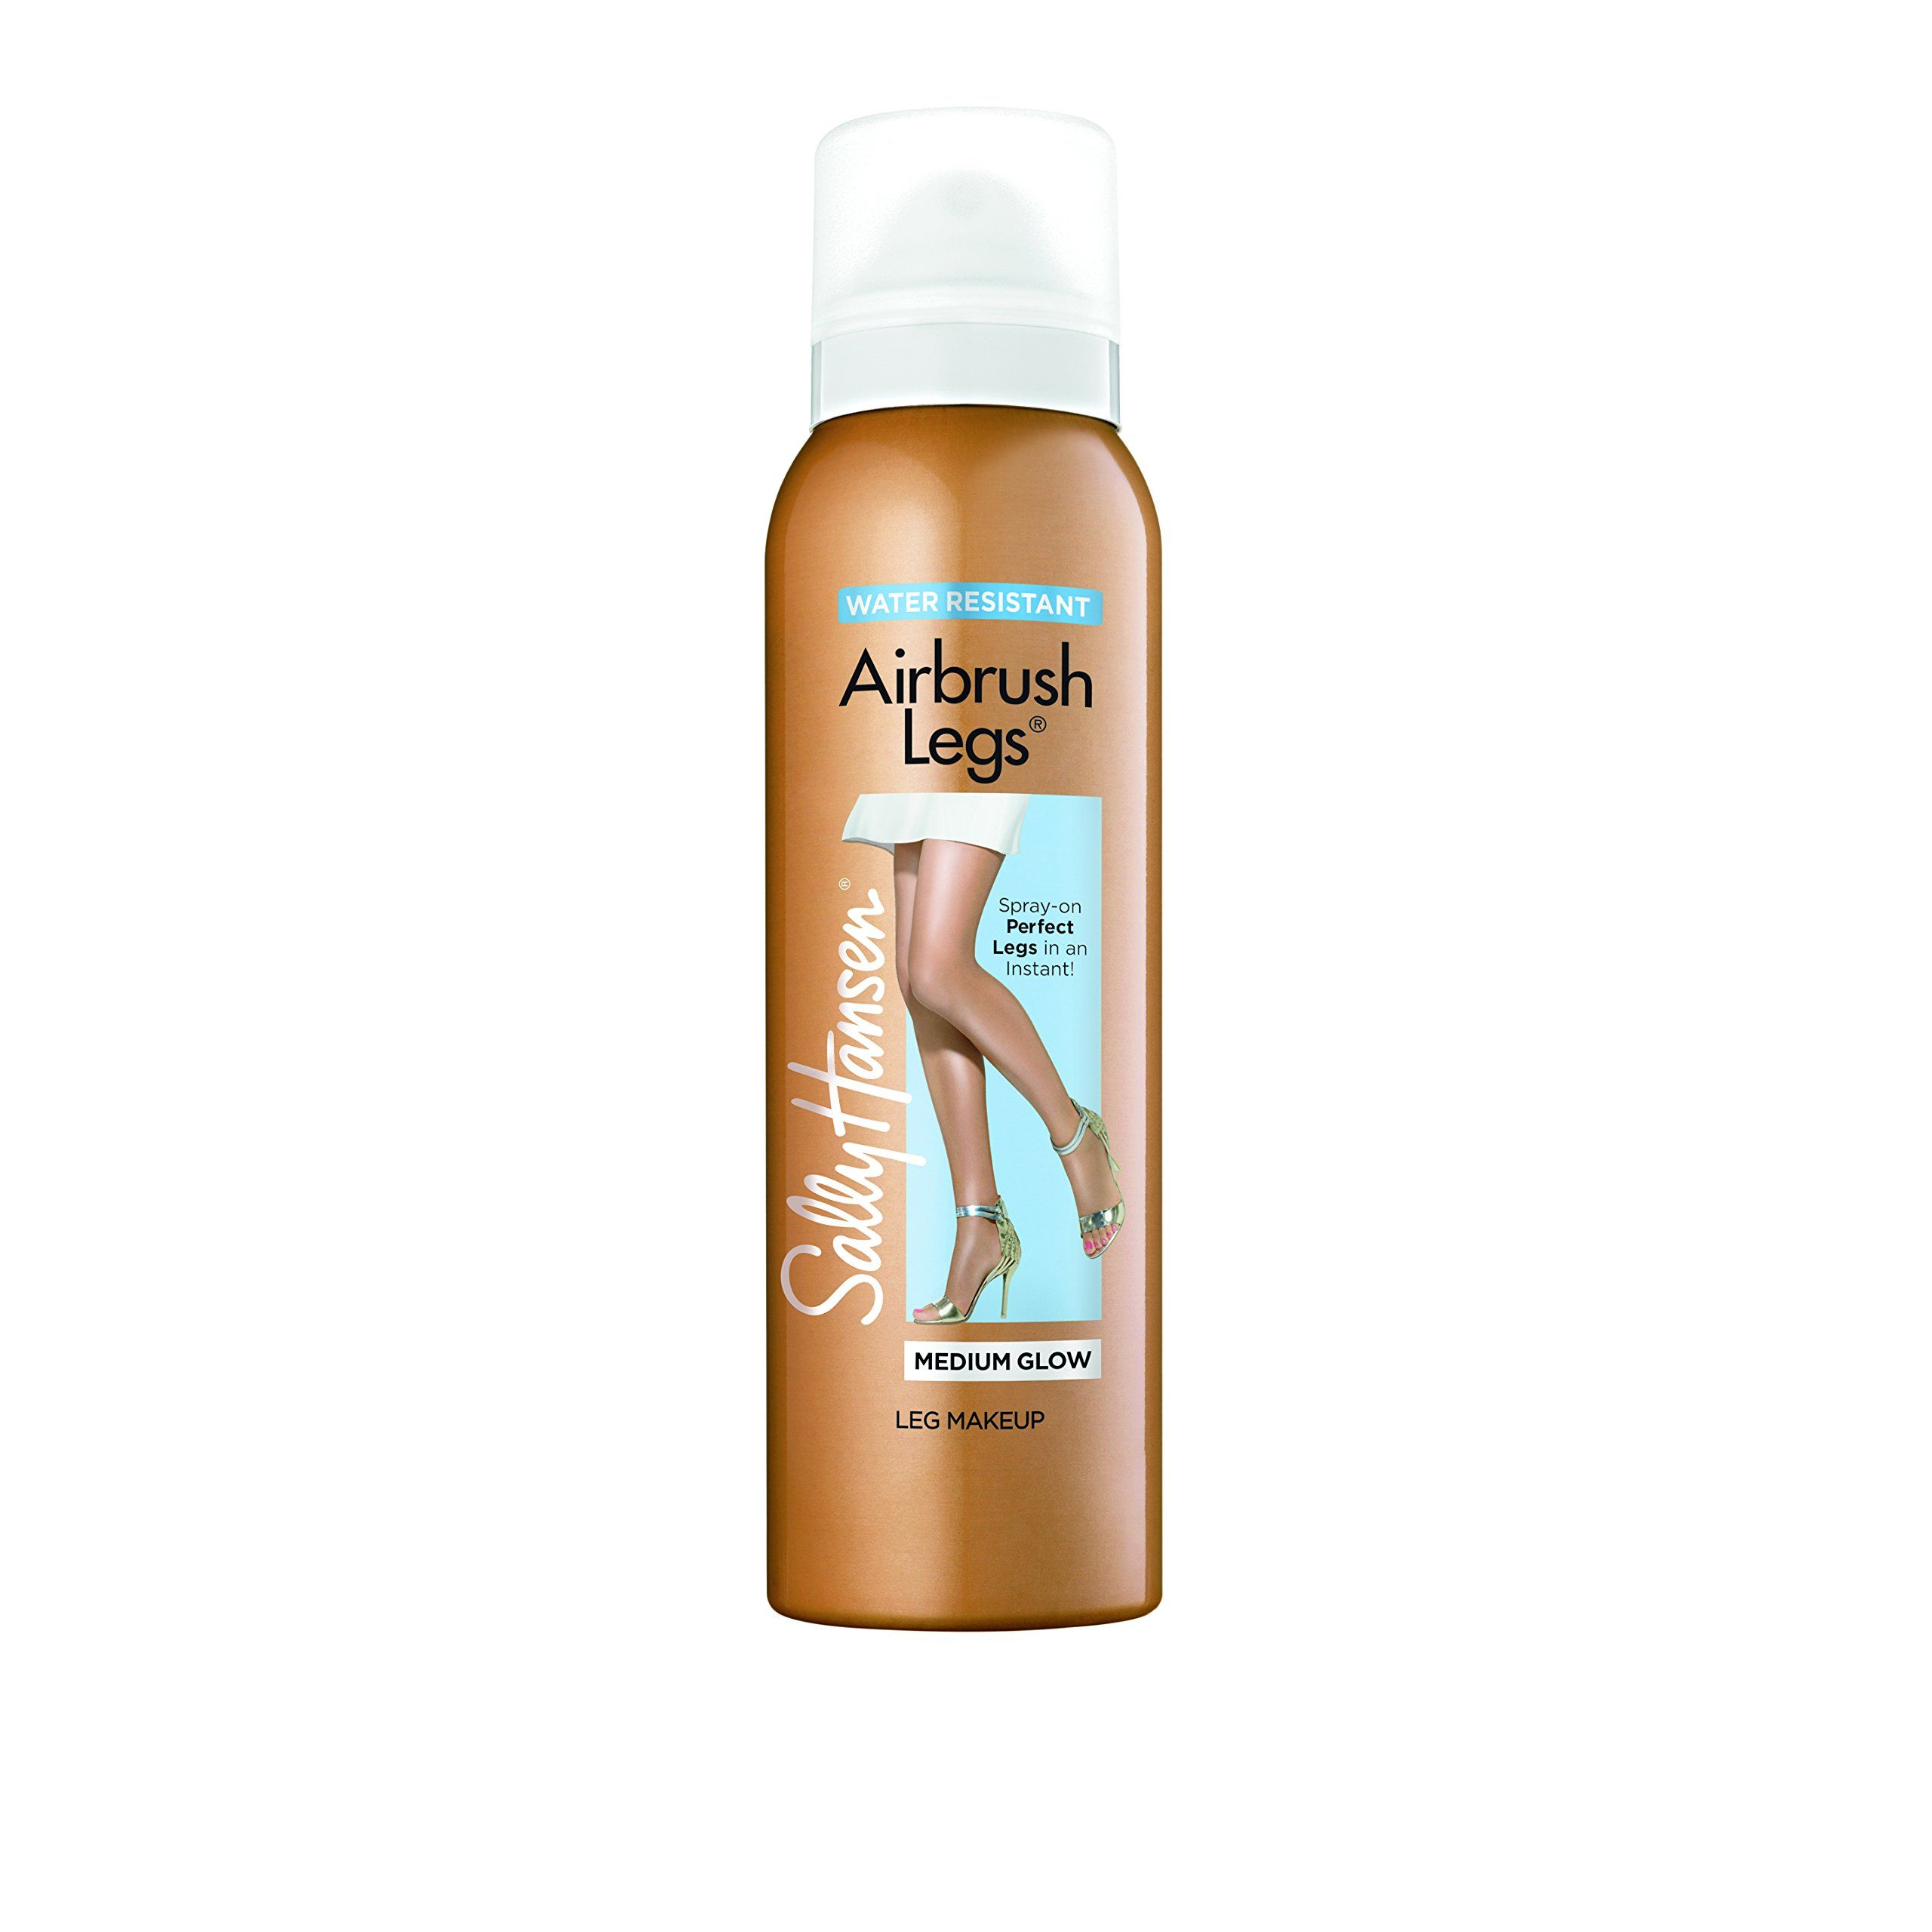 Sally Hansen Air Brush Legs Medium Glow, 4.4 Oz, Pack Of 1